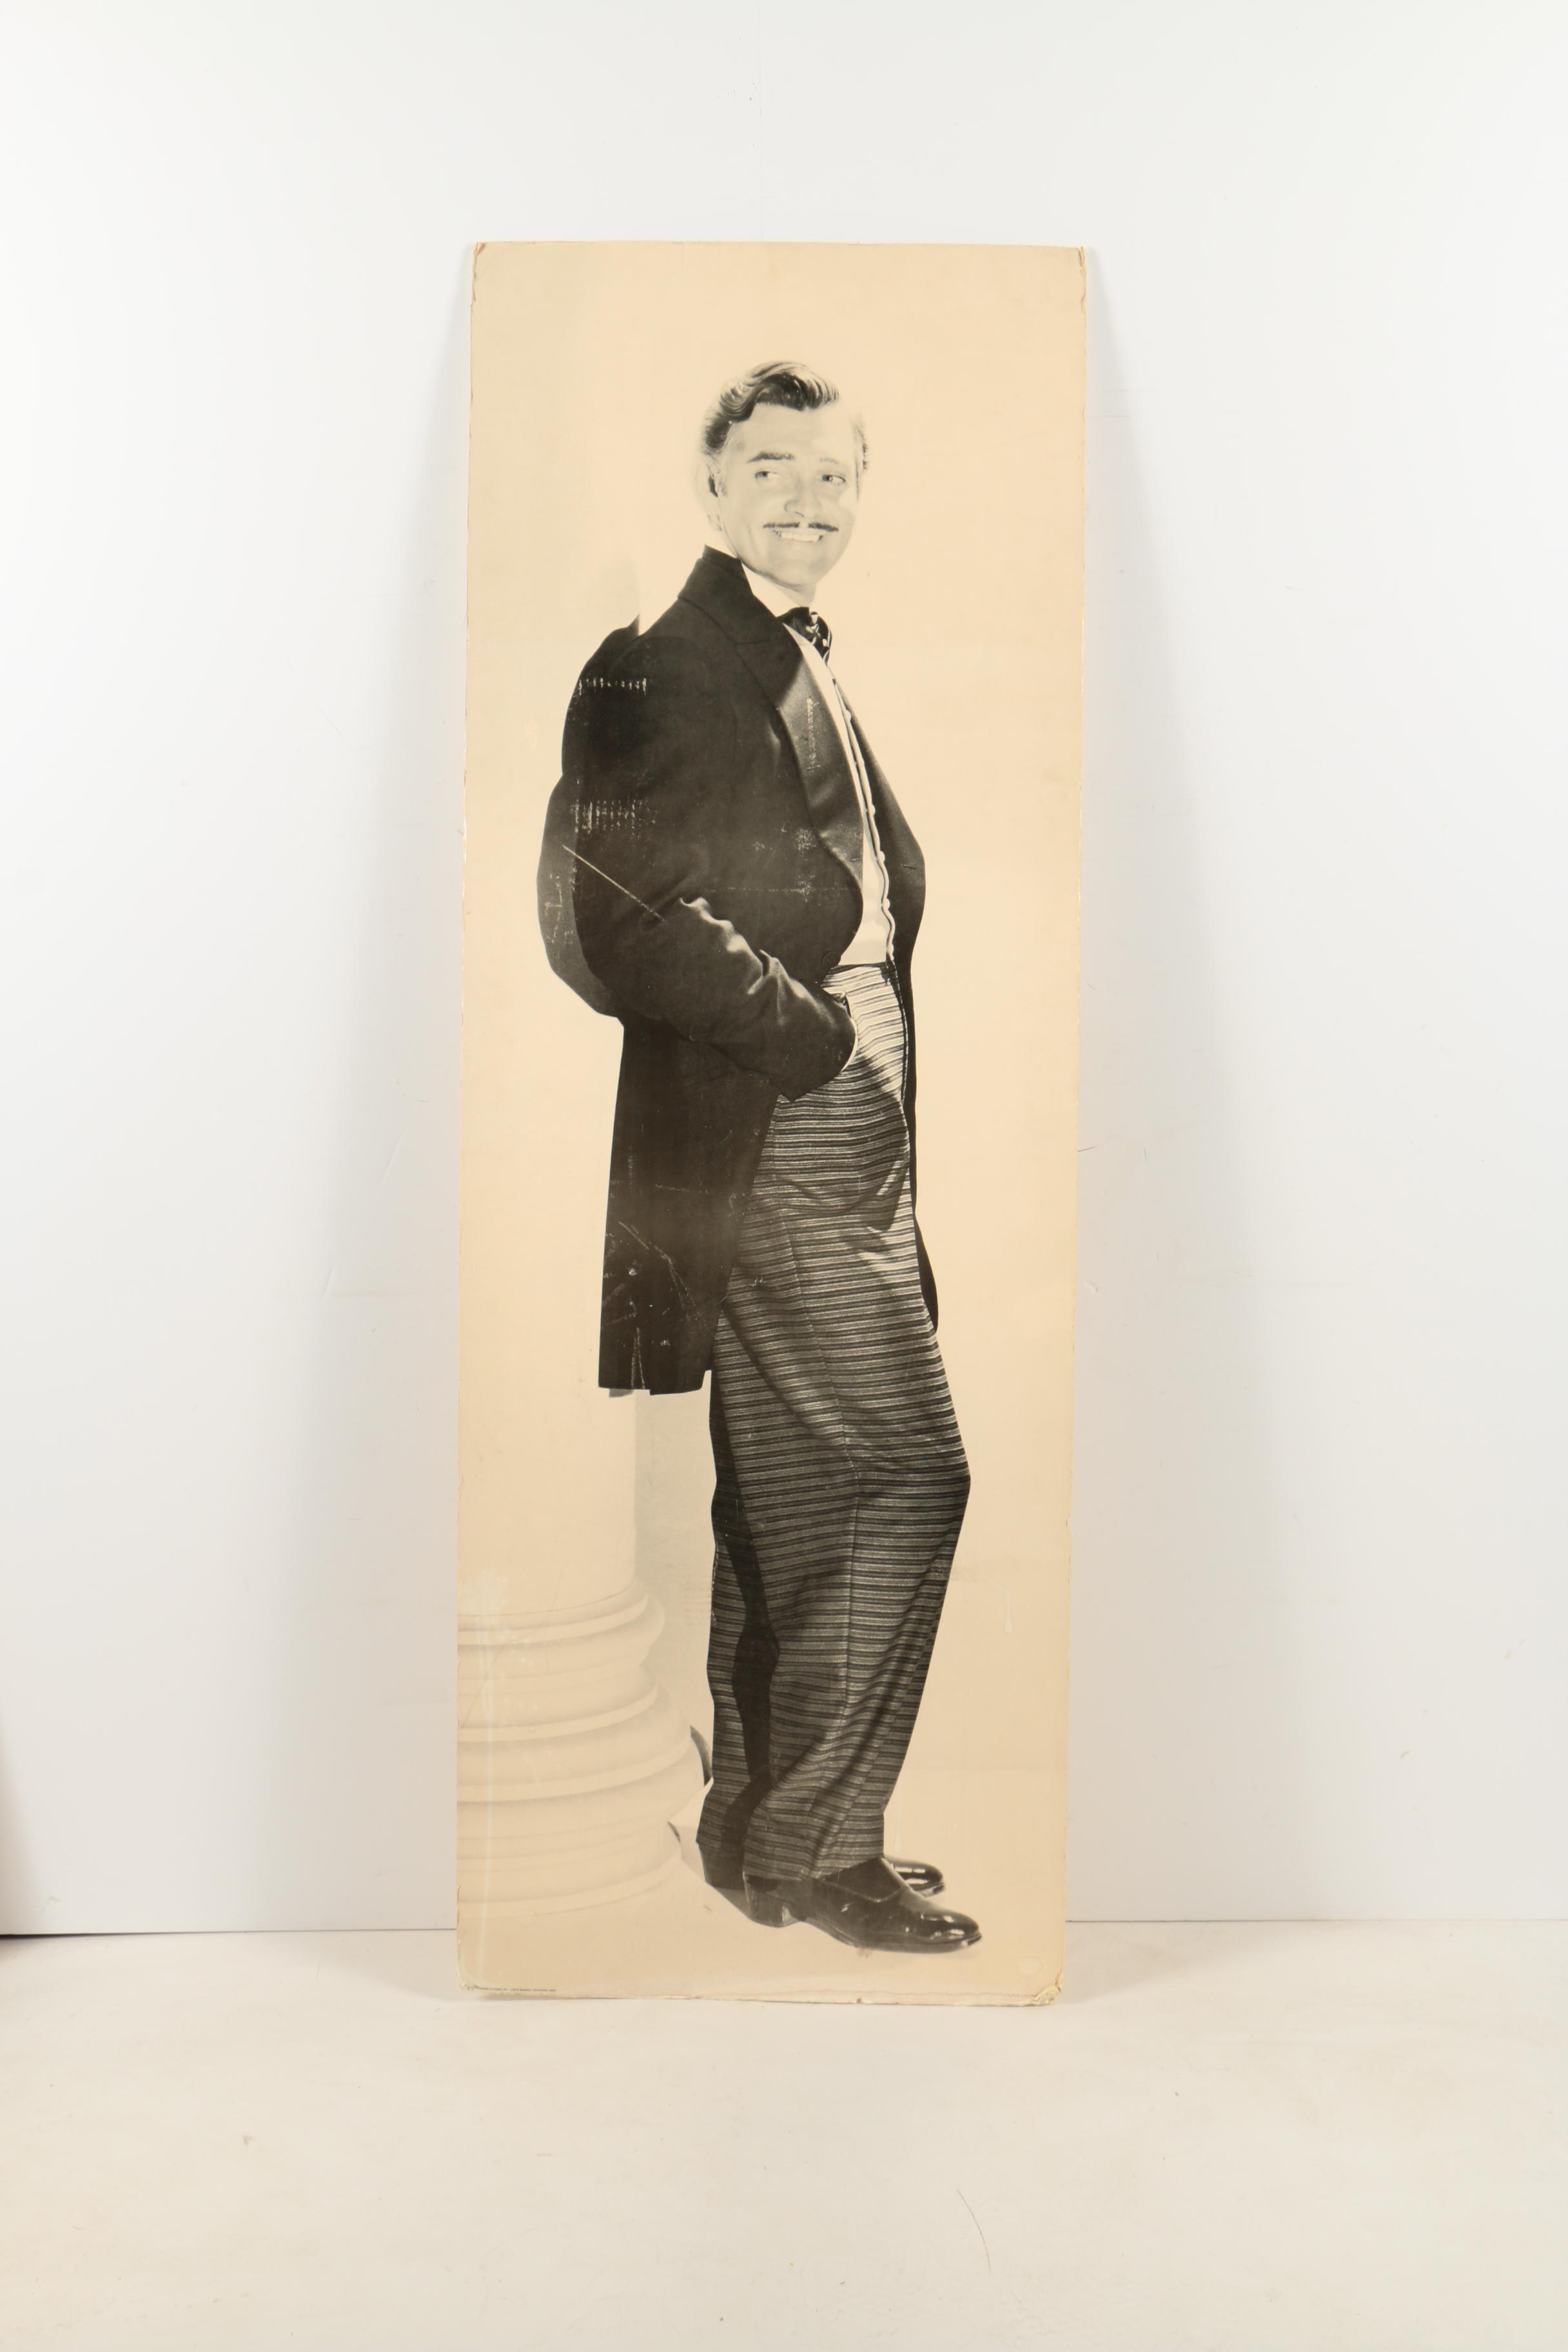 Offset Lithograph on Paper Mounted to Foam Core of Clark Gable